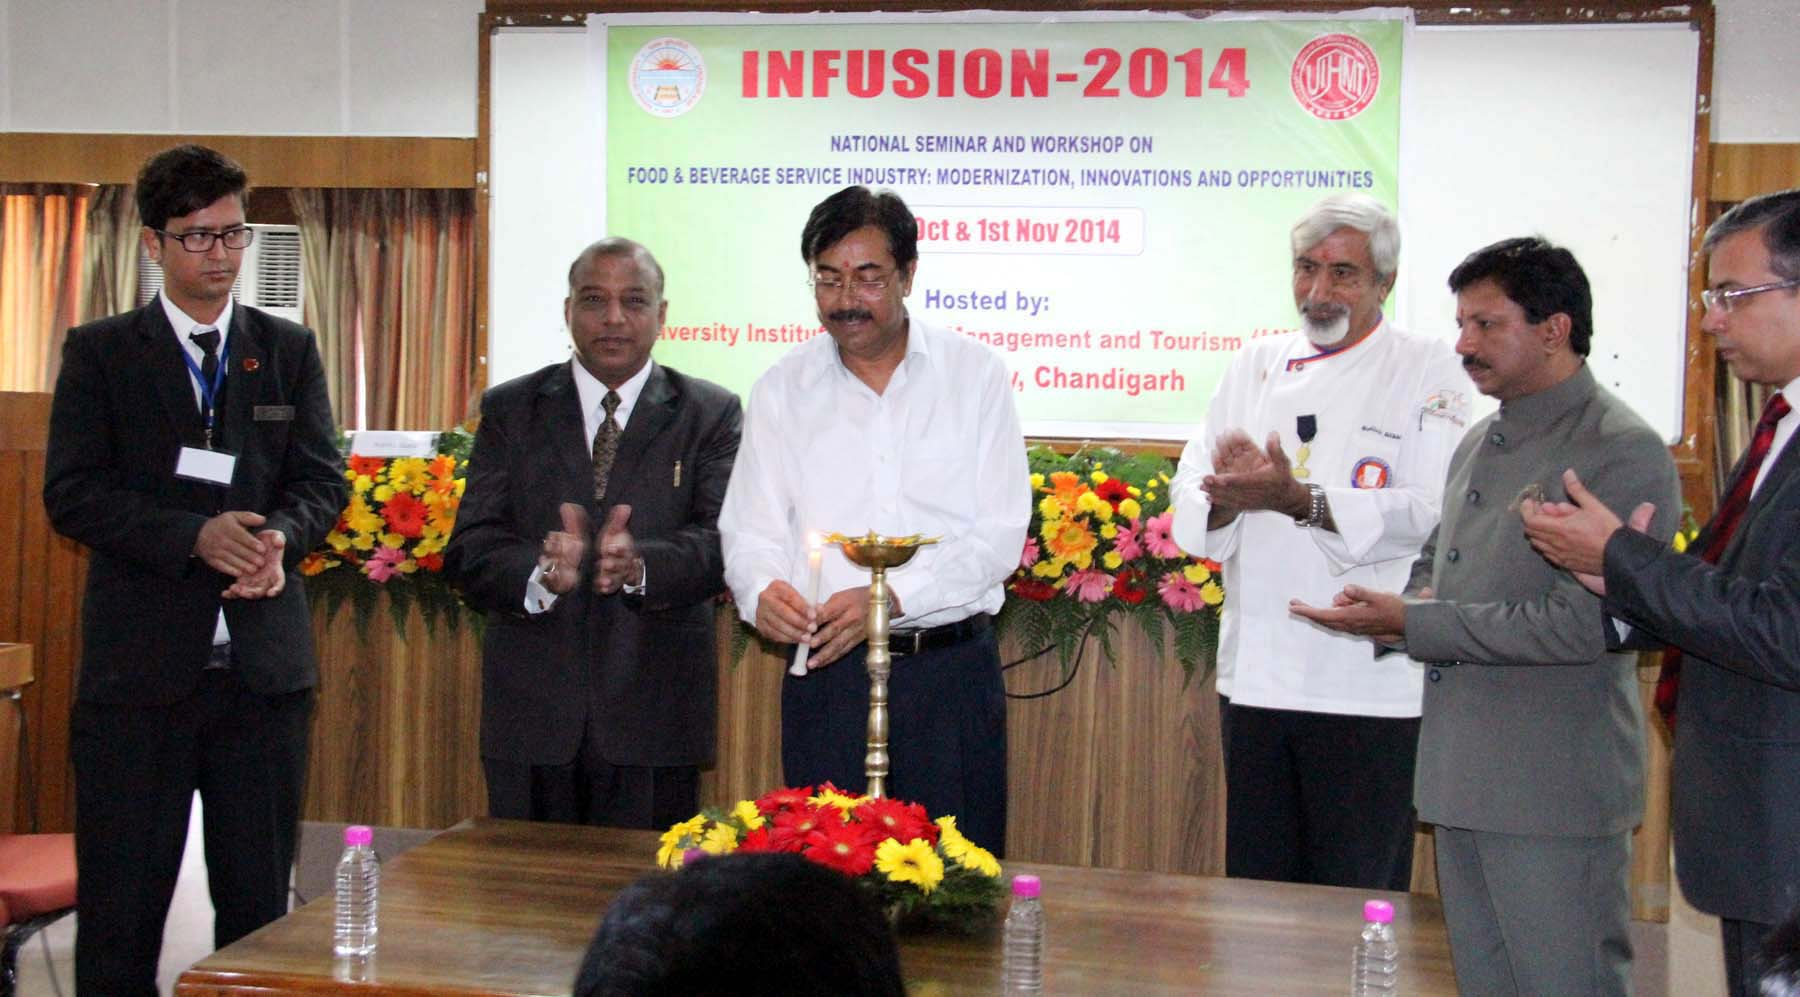 UT Home Secretary, Mr. Anil Kumar lighting the traditional lamp at the inauguration of National Seminar and Workshop on food and beverage service industry- modernization, innovations and opportunities at Panjab University, on Friday, October 31, 2014.